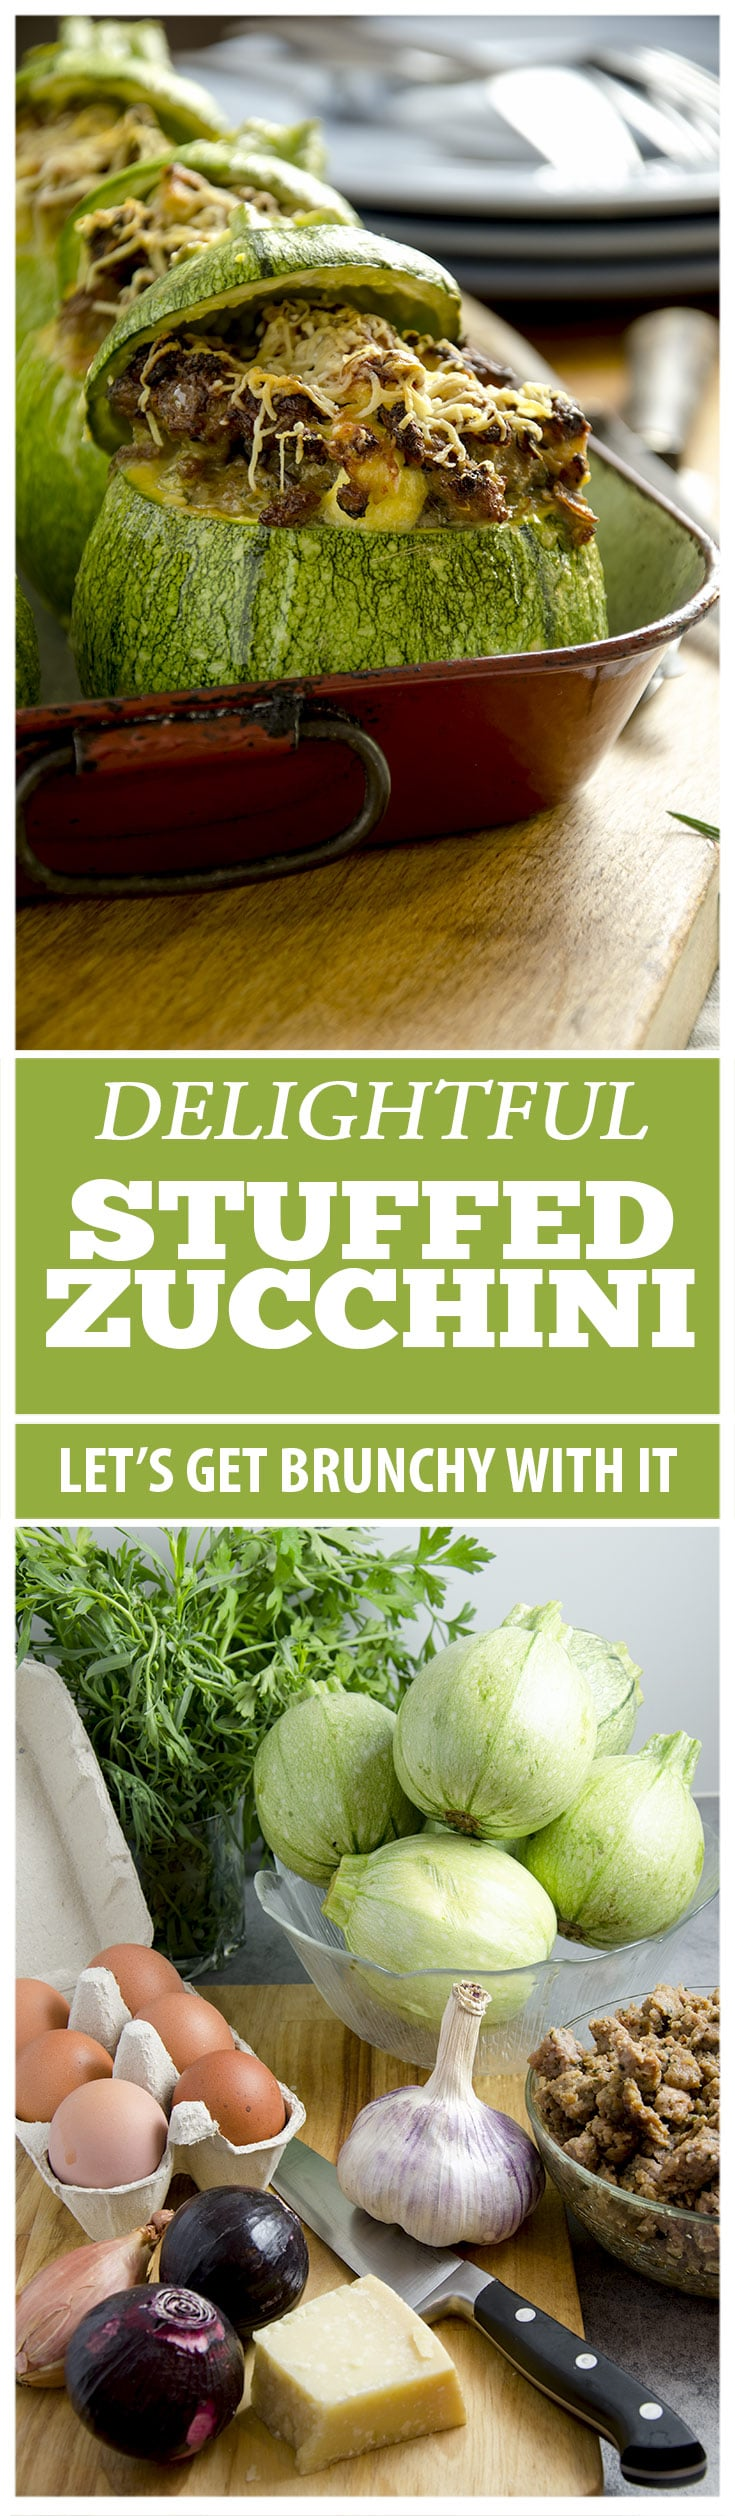 Stuffed zucchini is a delightful way to start the day... whether it is breakfast, brunch or lunch! These delightful orbs of goodness will get you going for the whole day.